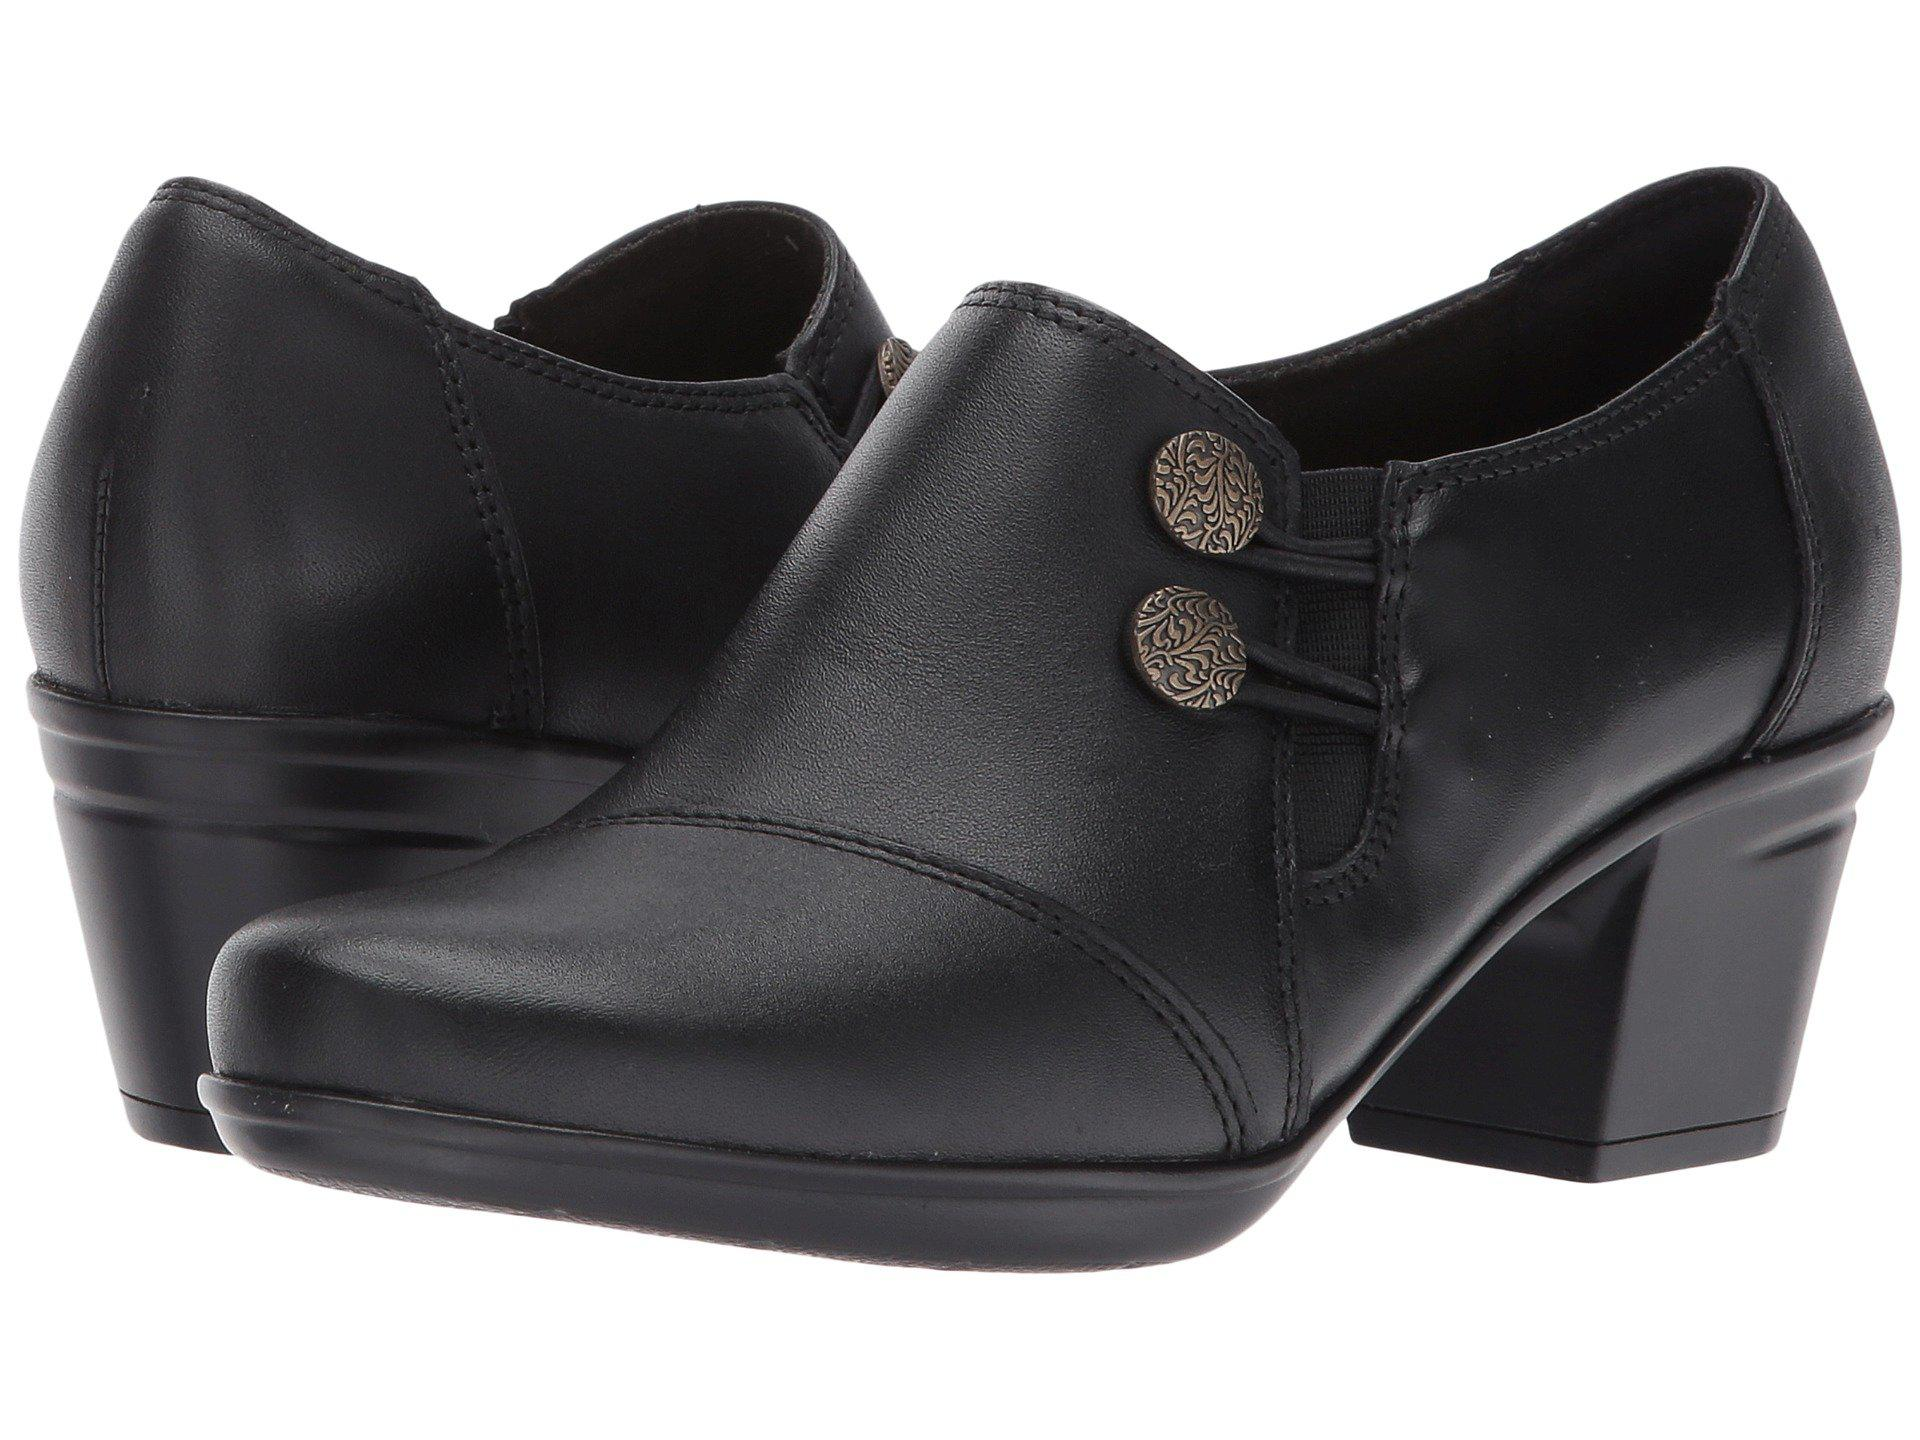 3903edfa82 Lyst - Clarks Emslie Warren (dark Brown) Women s Slip On Shoes in Black